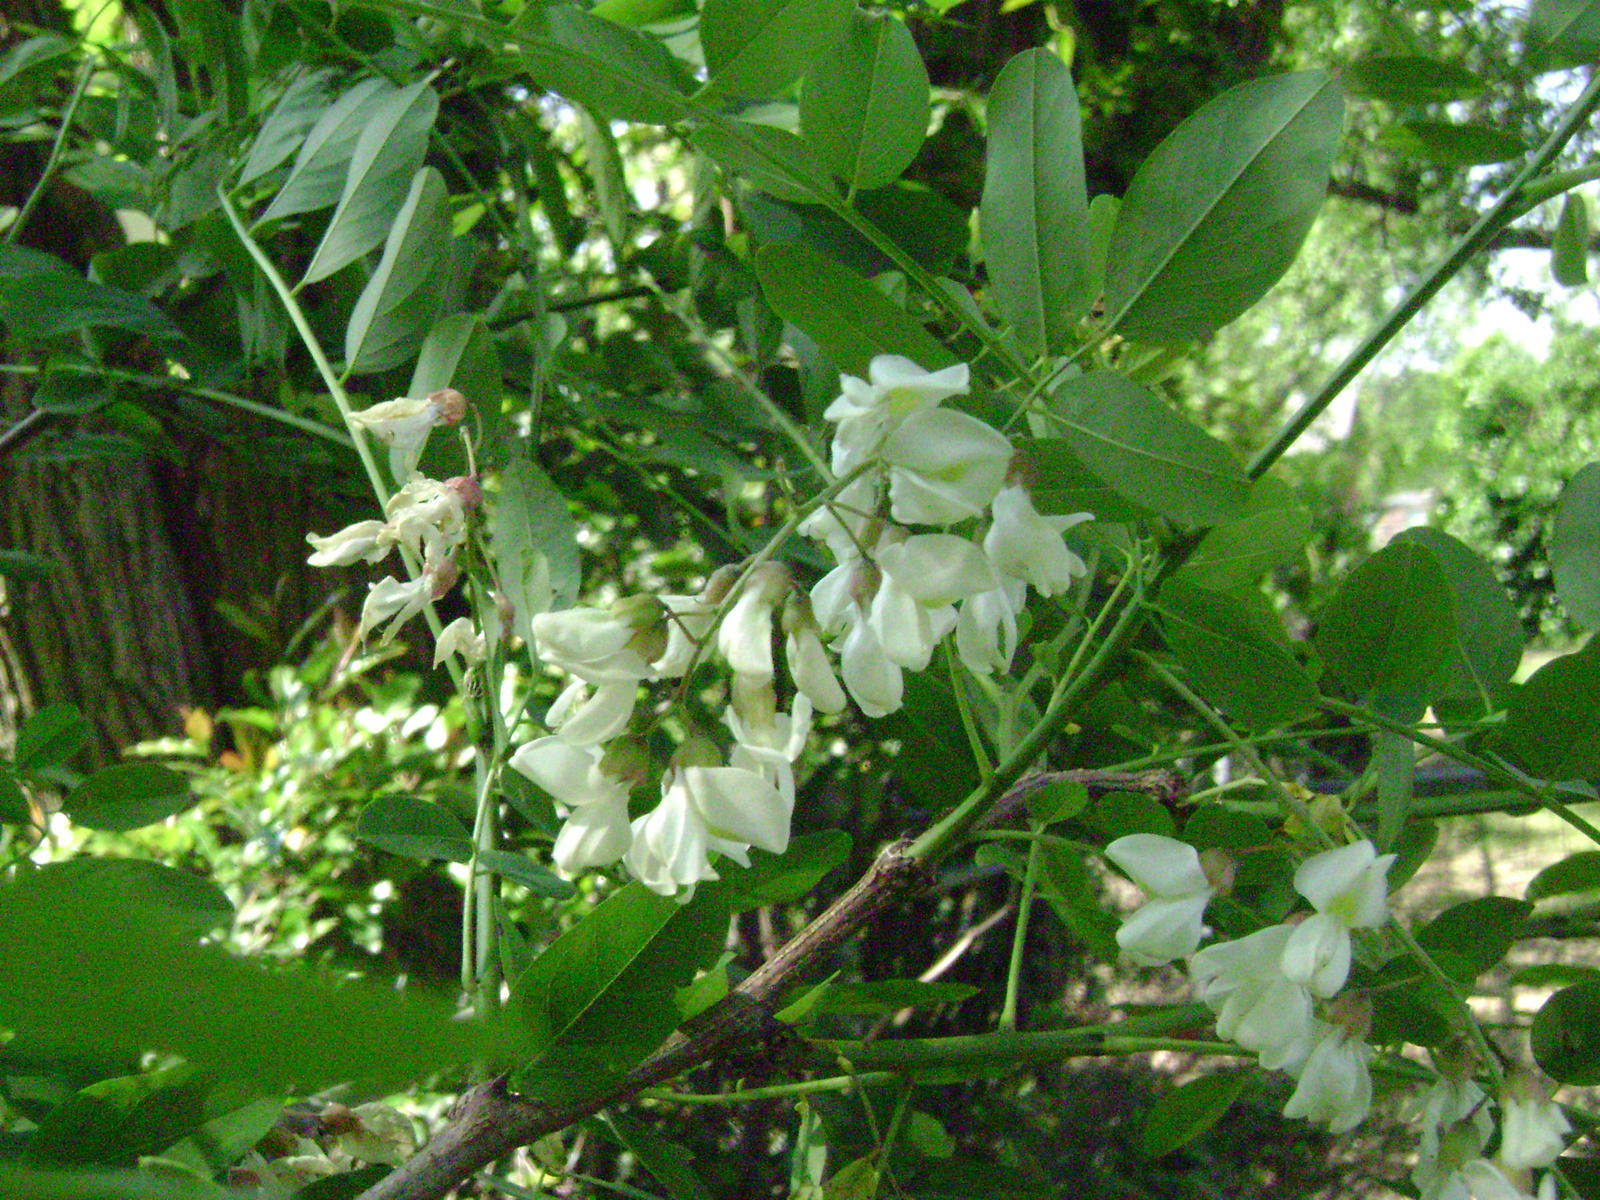 White flowering tree raleigh locust live yard best raleigh white flowering tree dsc03225g mightylinksfo